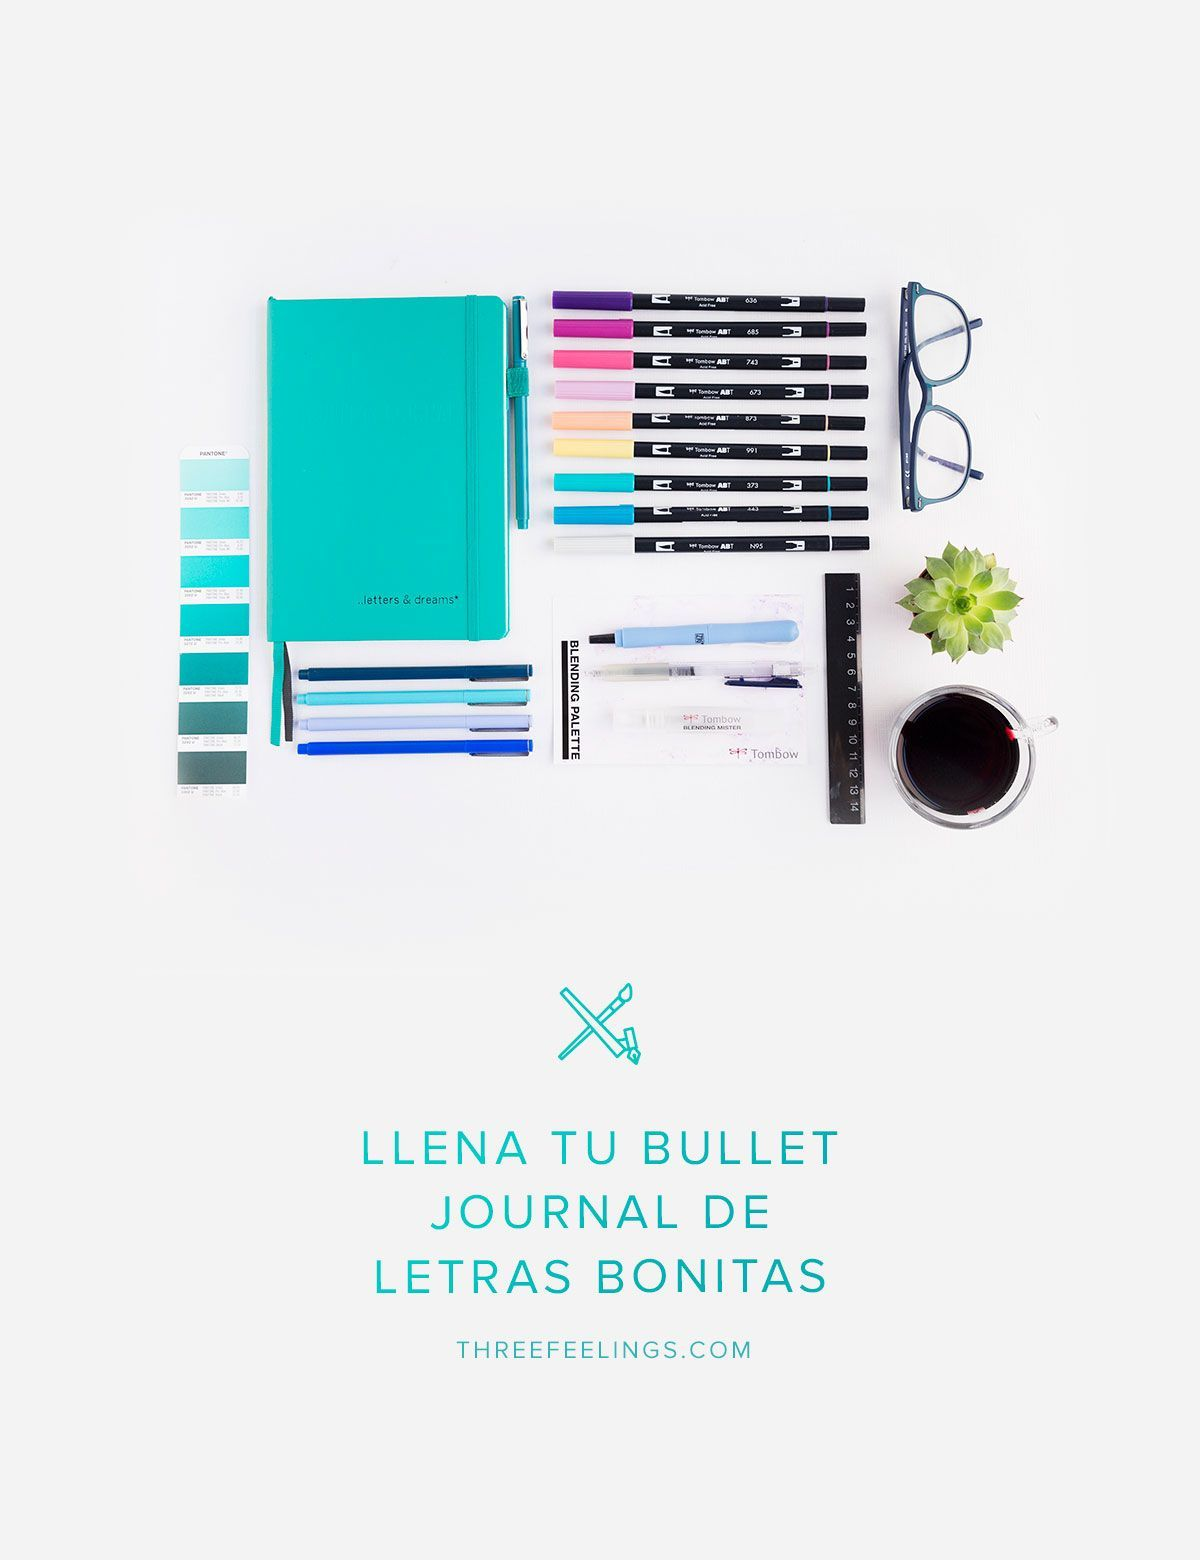 Llena Tu Bullet Journal De Letras Bonitas Y Mucho Color